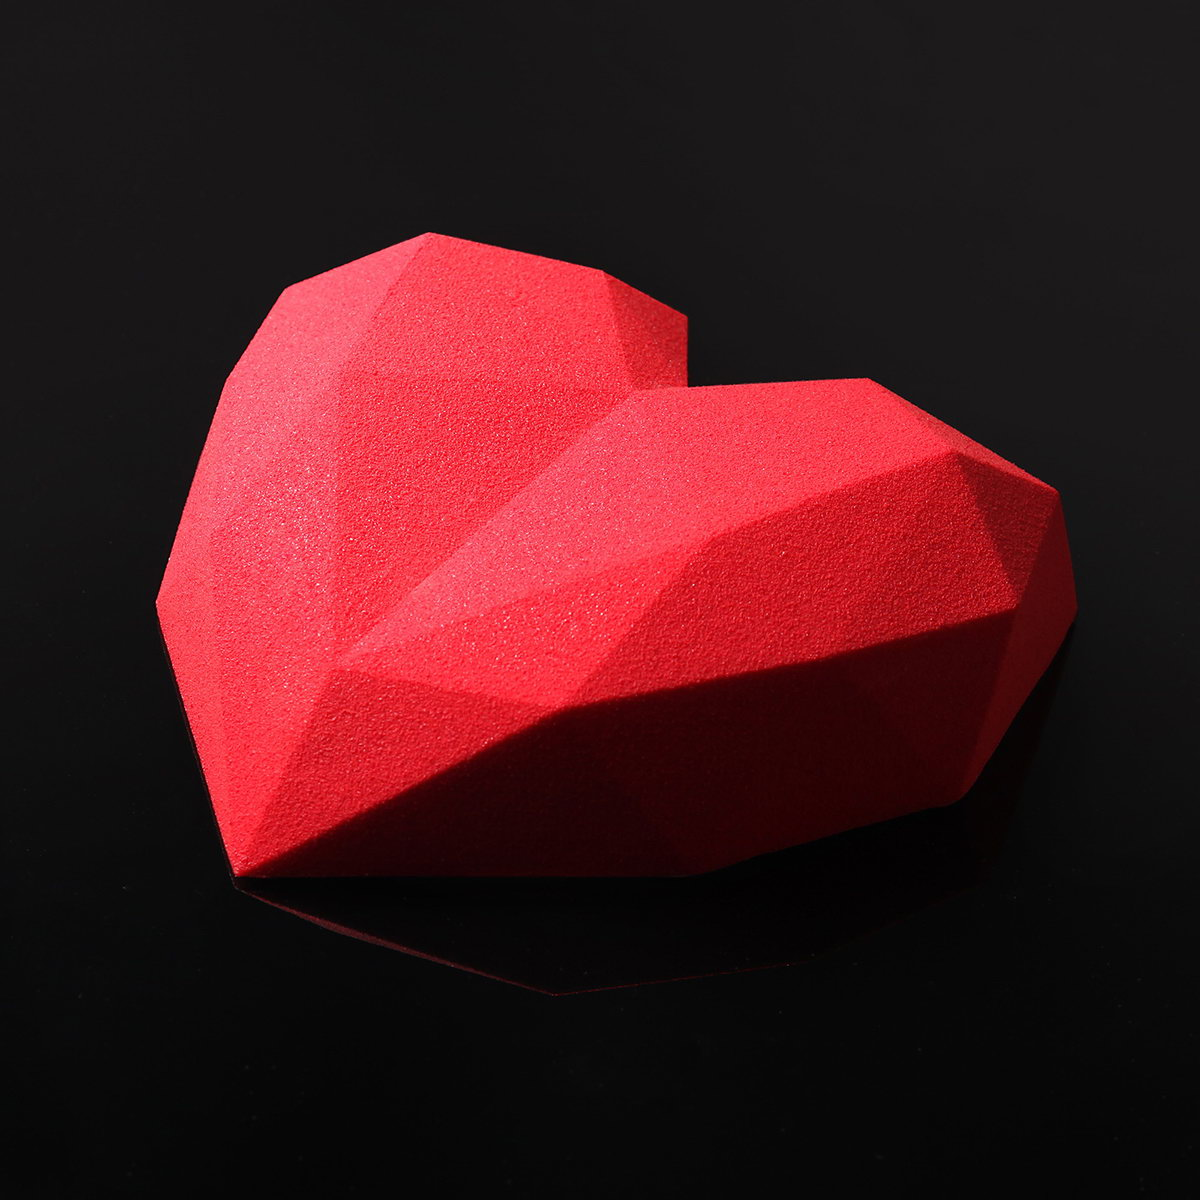 Pastry Art -  3D Diamond Heart Mold Cake Decoration